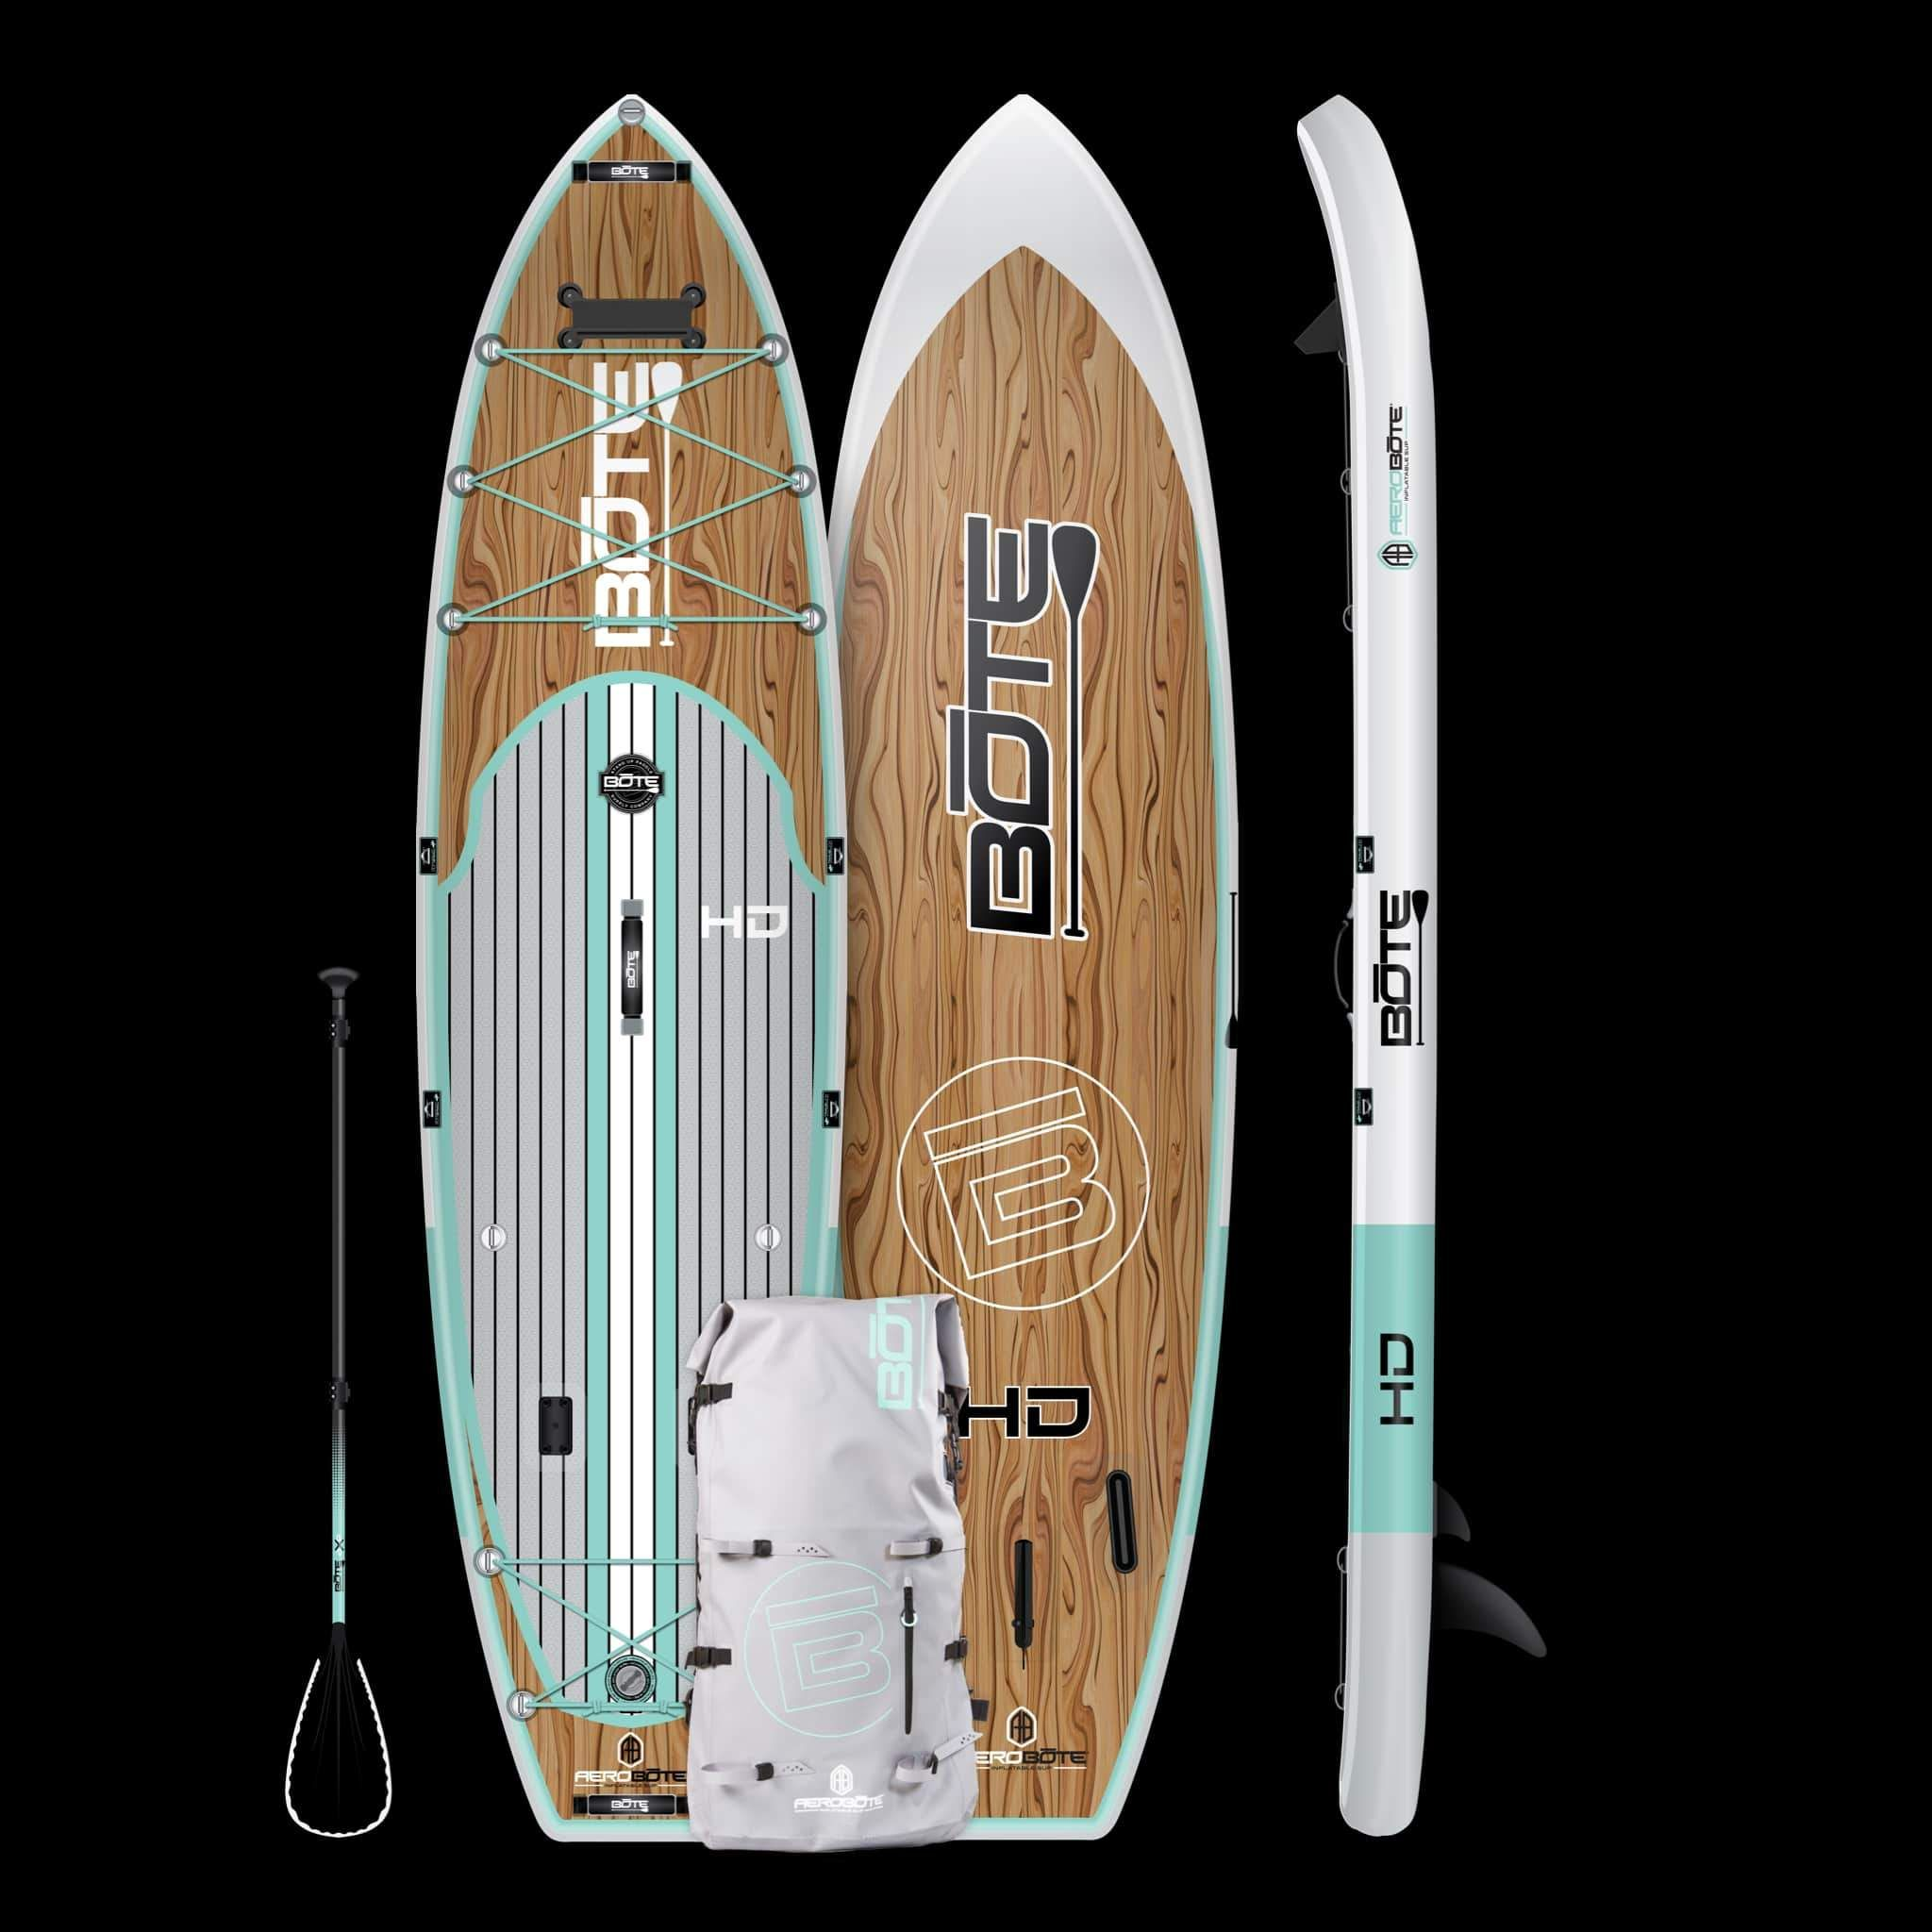 BOTE SUP Boards To Help You In Your Water Activities